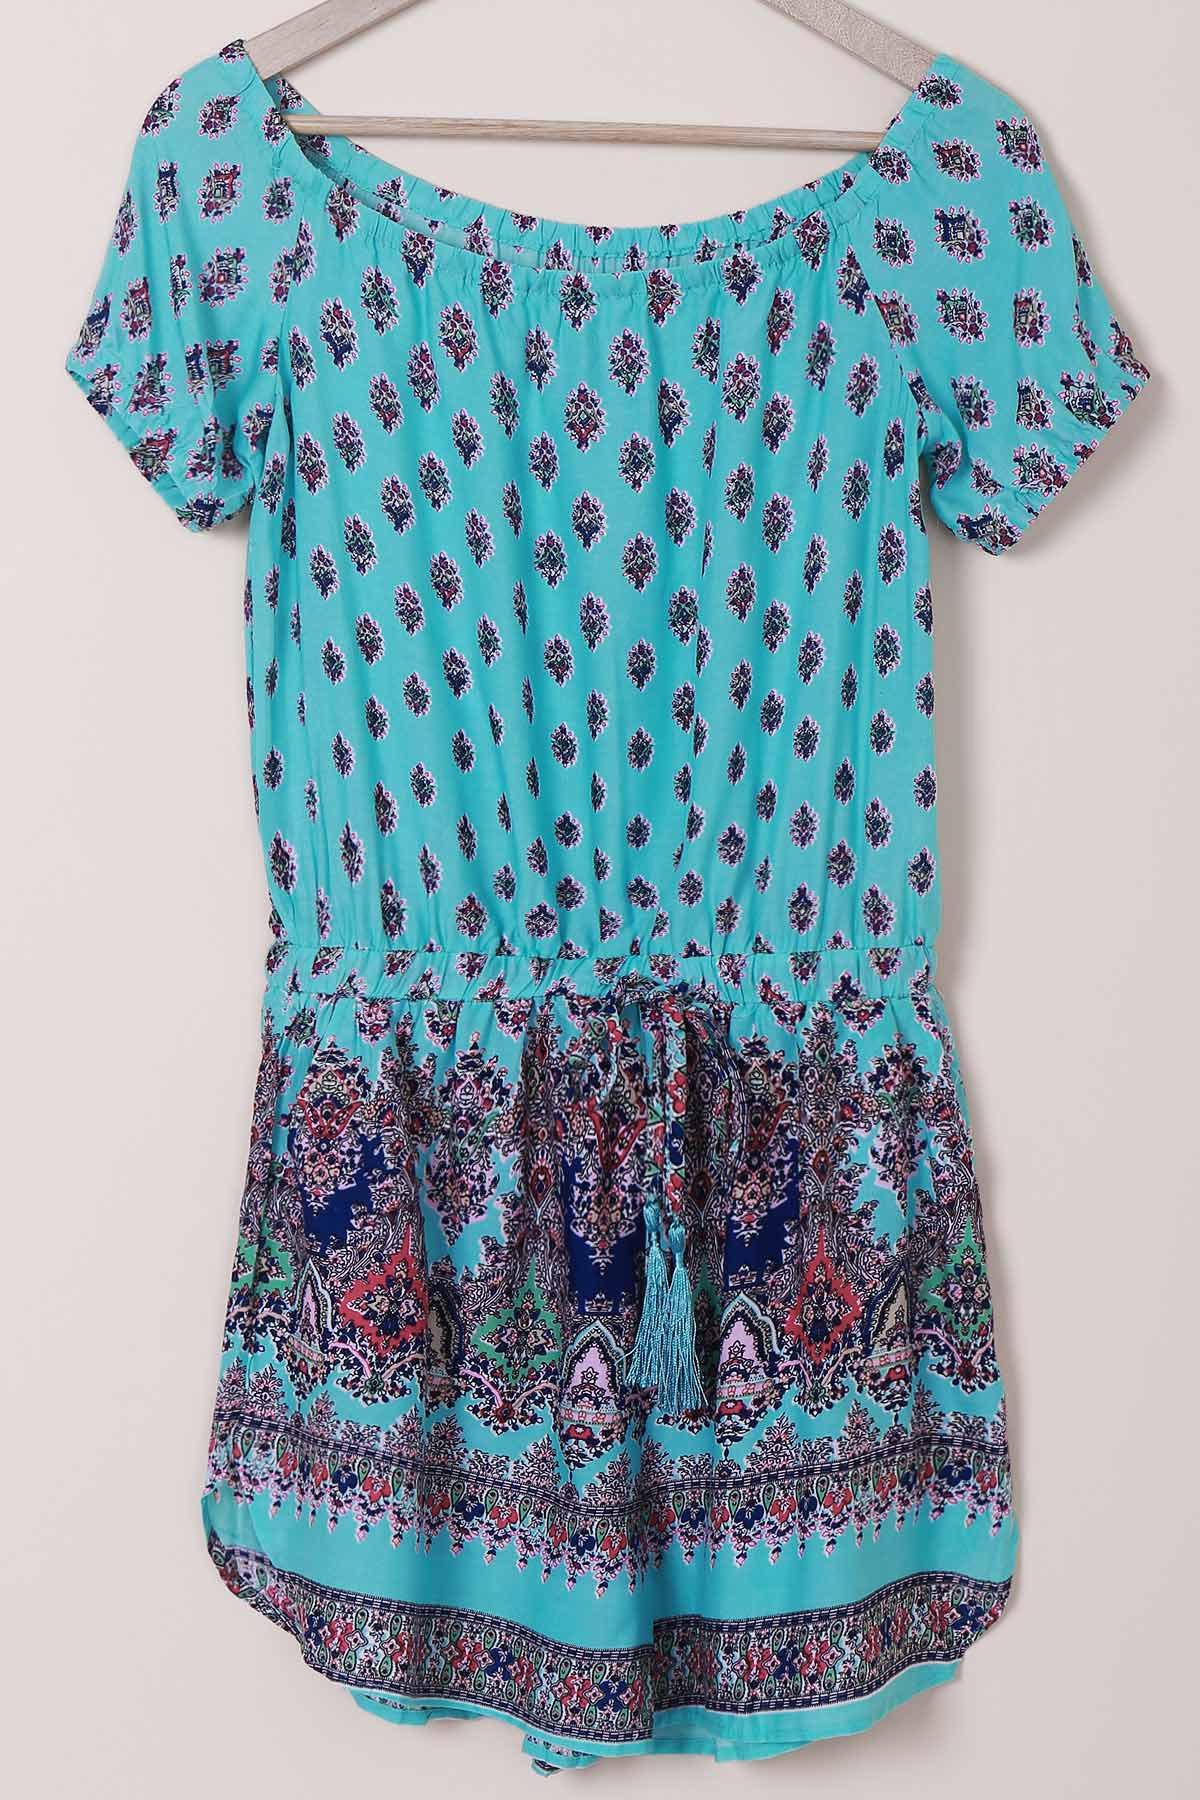 Bohemian Short Sleeve Off-The-Shoulder Printed Women's Romper - BLUE M